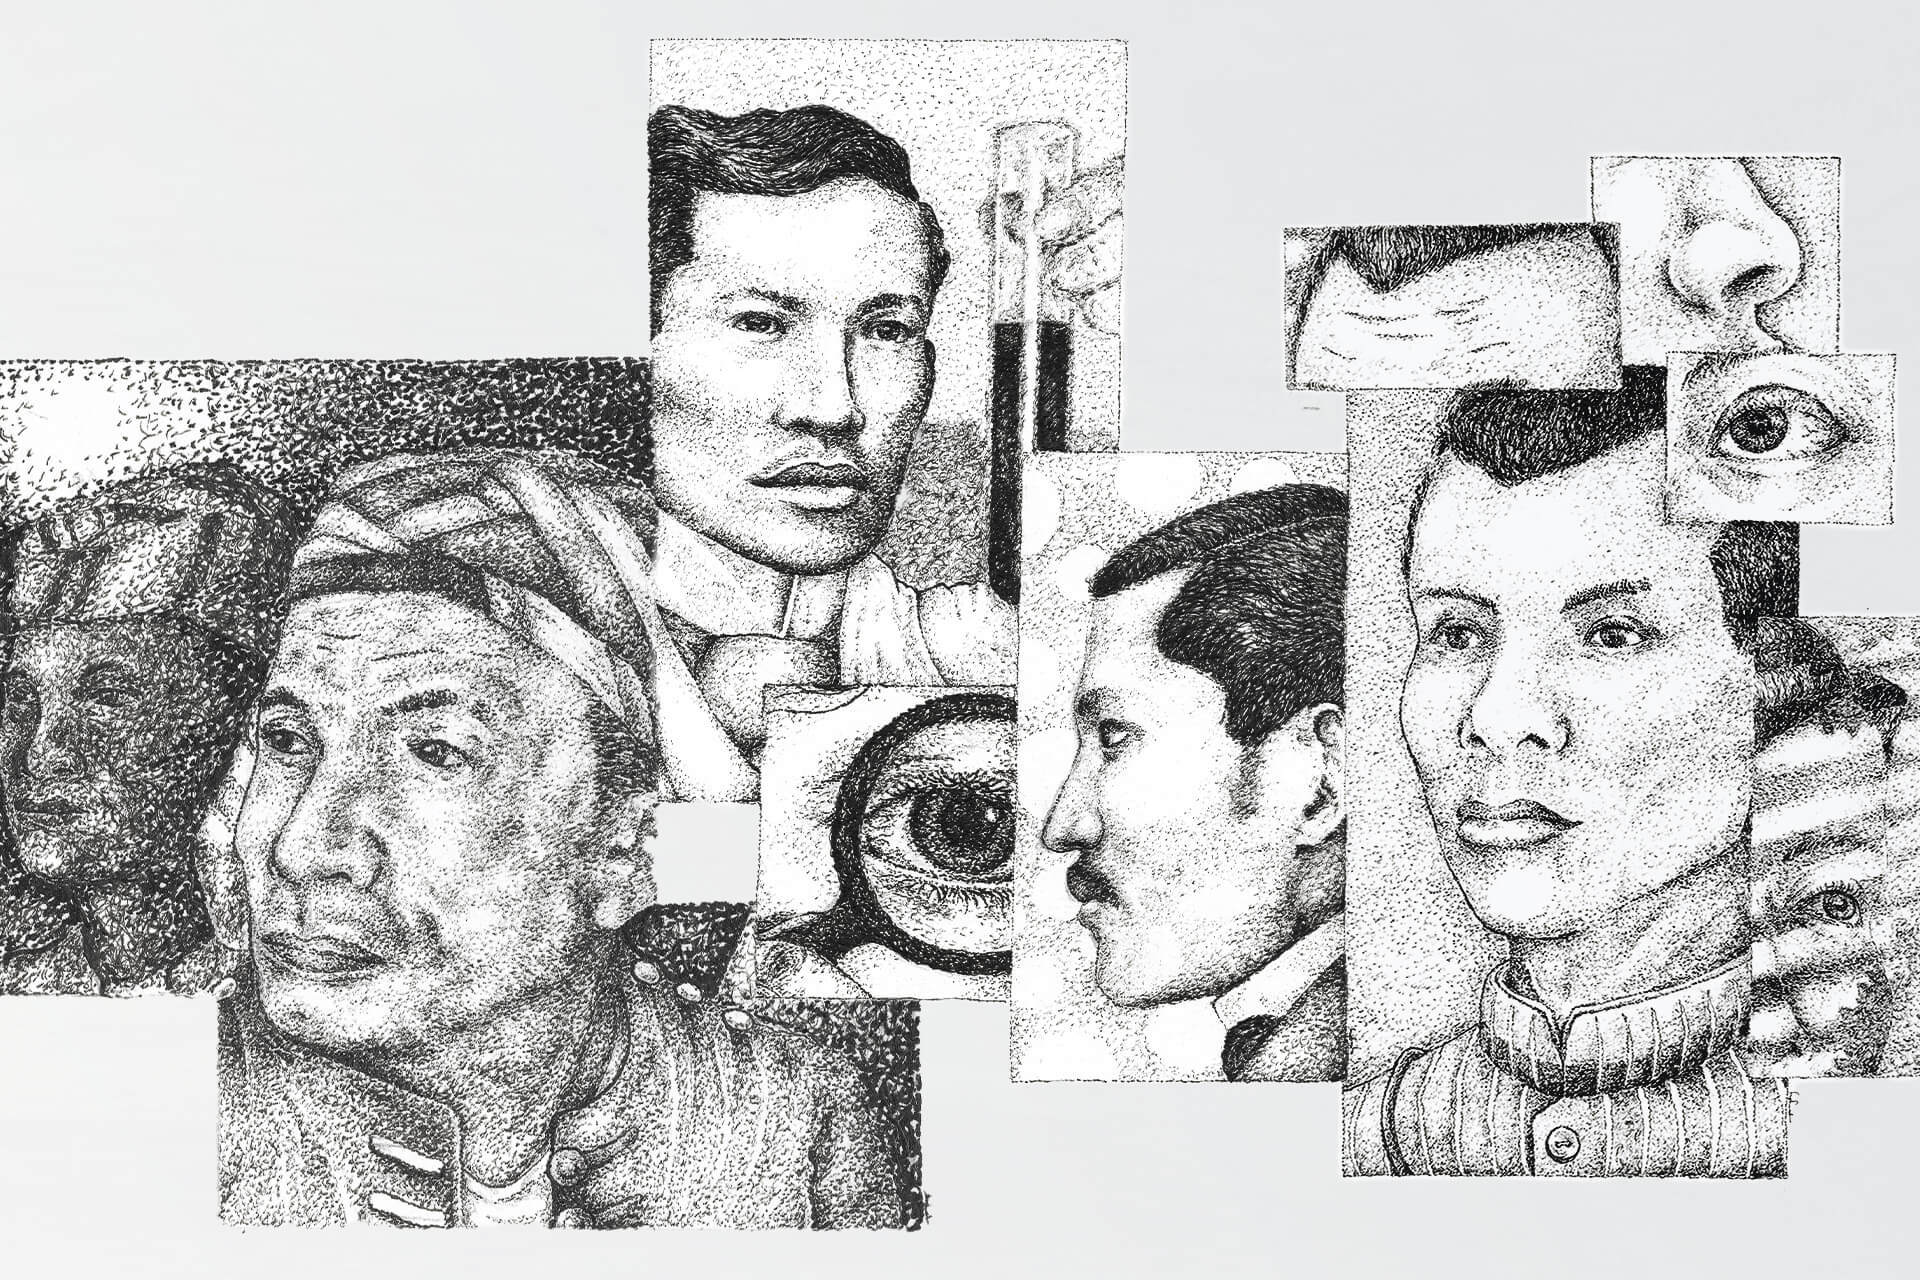 Books, essays, and critiques about our national heroes, curated and recommended by Filipino historians.